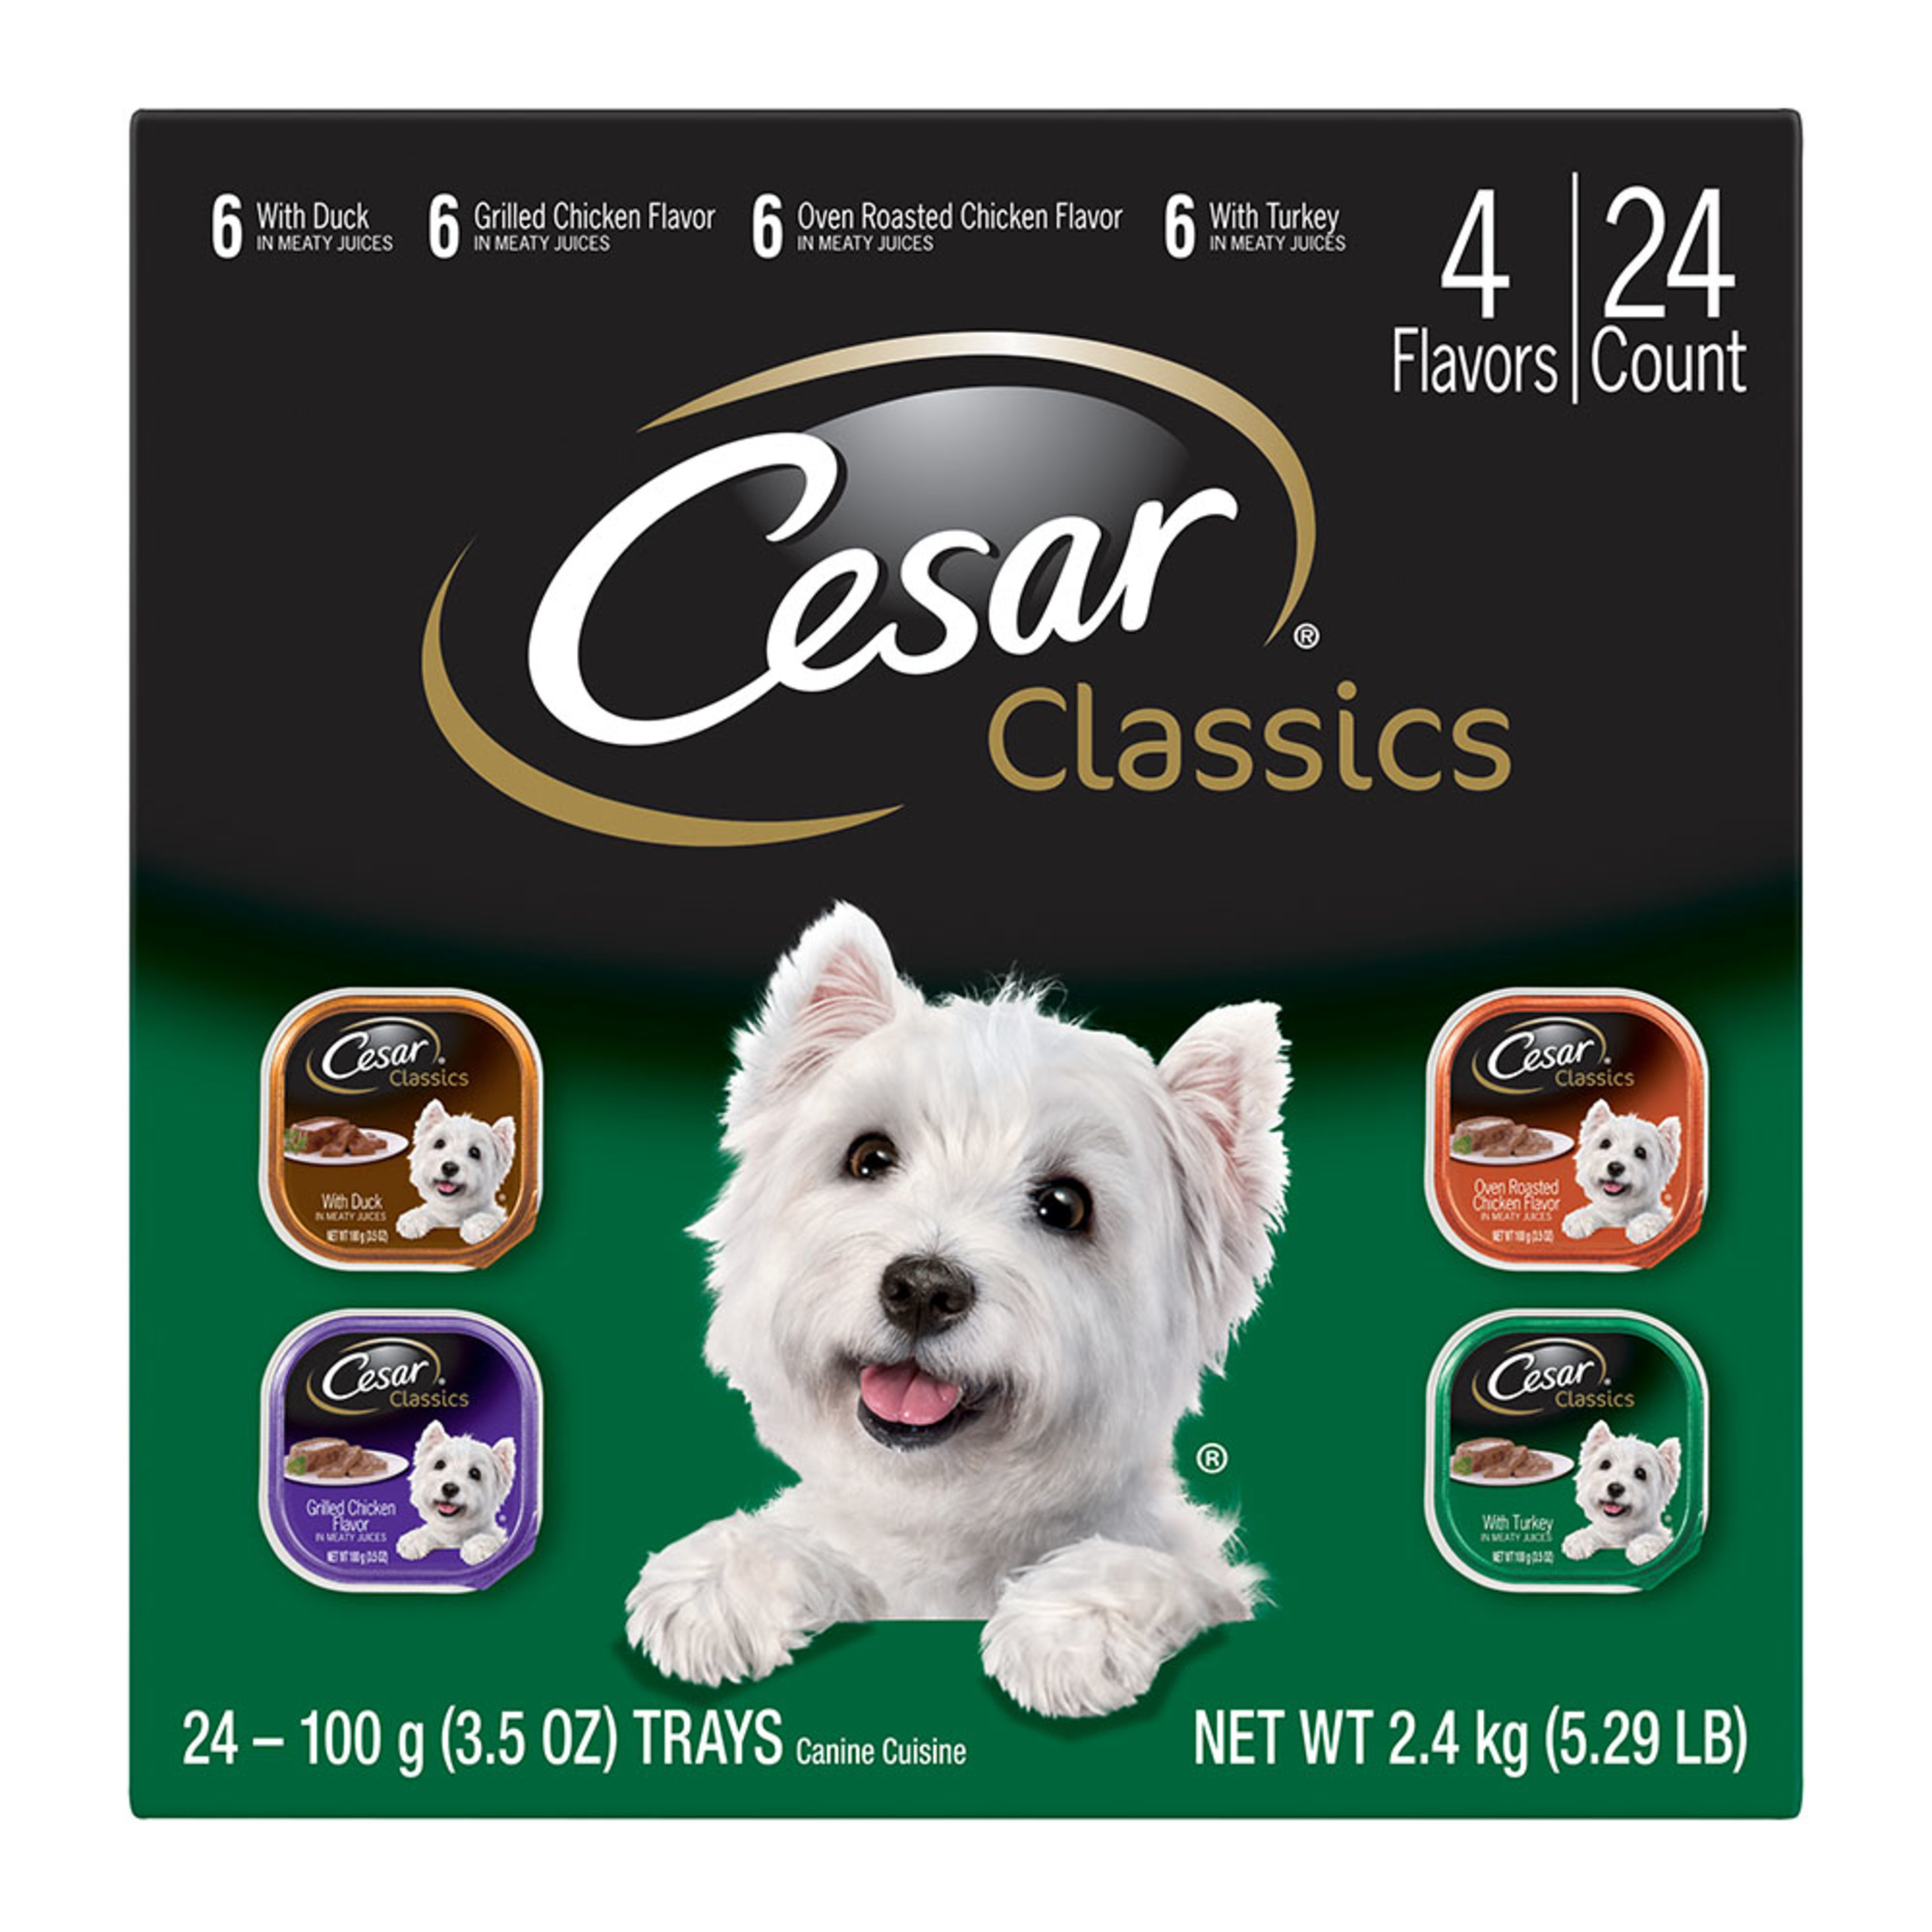 CESAR CANINE CUISINE Wet Dog Food Poultry Variety Pack, (24) 3.5 oz. Trays by Mars Petcare